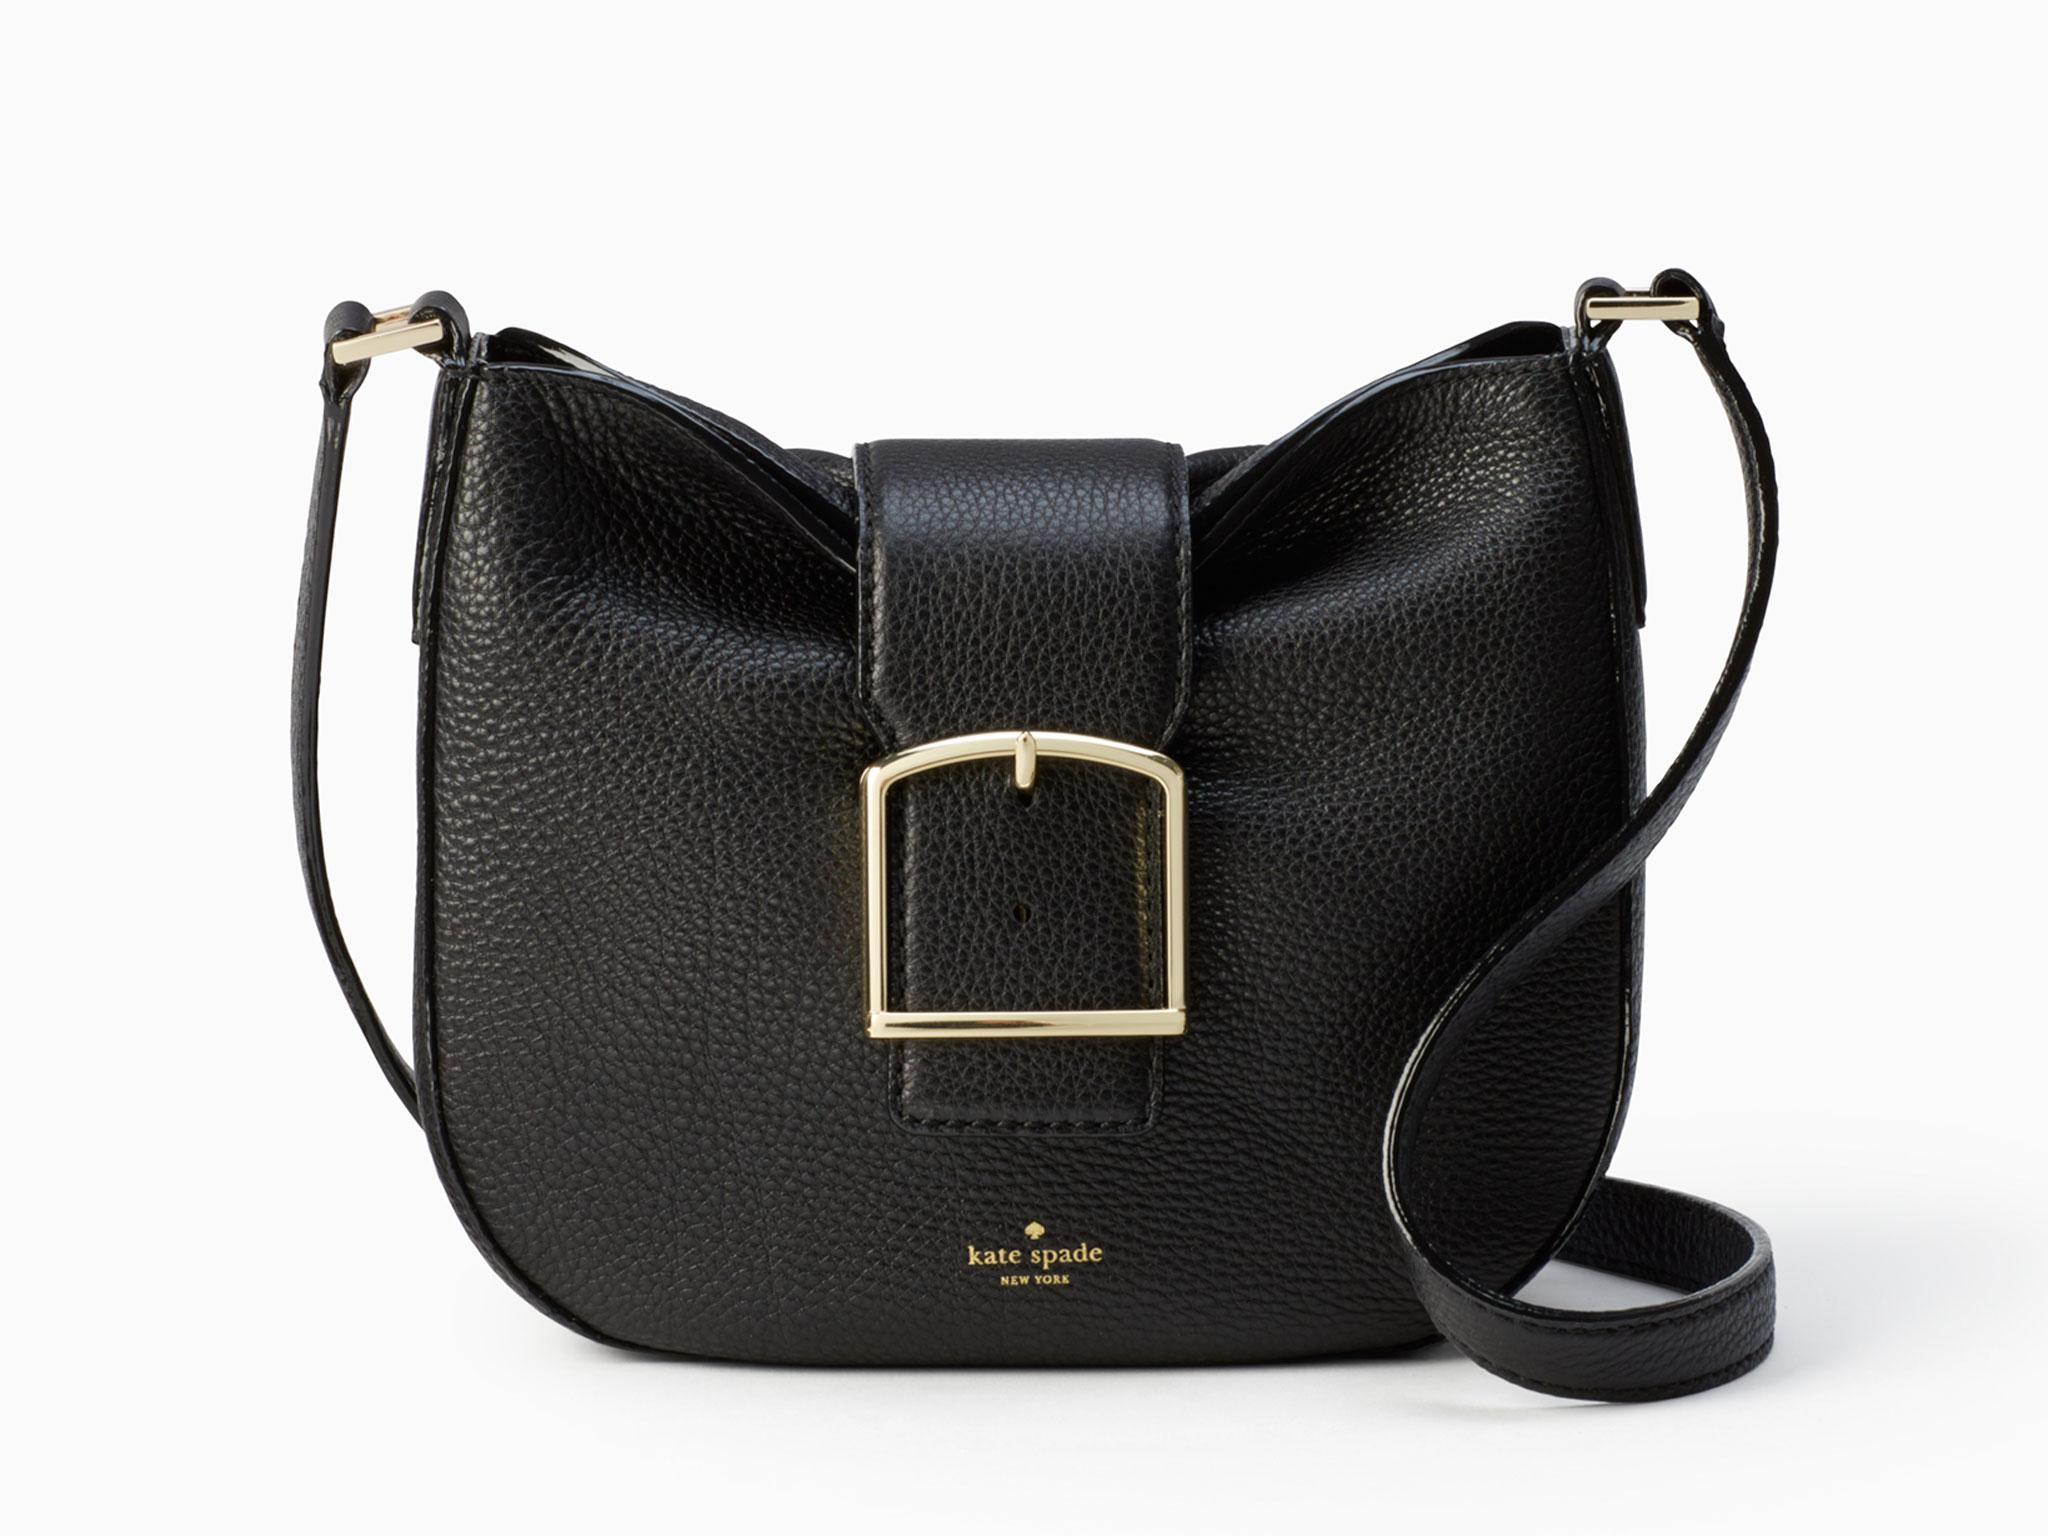 95953daa0e1 It might be spring but if colour s not your thing don t be tempted to  splurge on something you might not wear. If it s a classic black handbag  you re after, ...